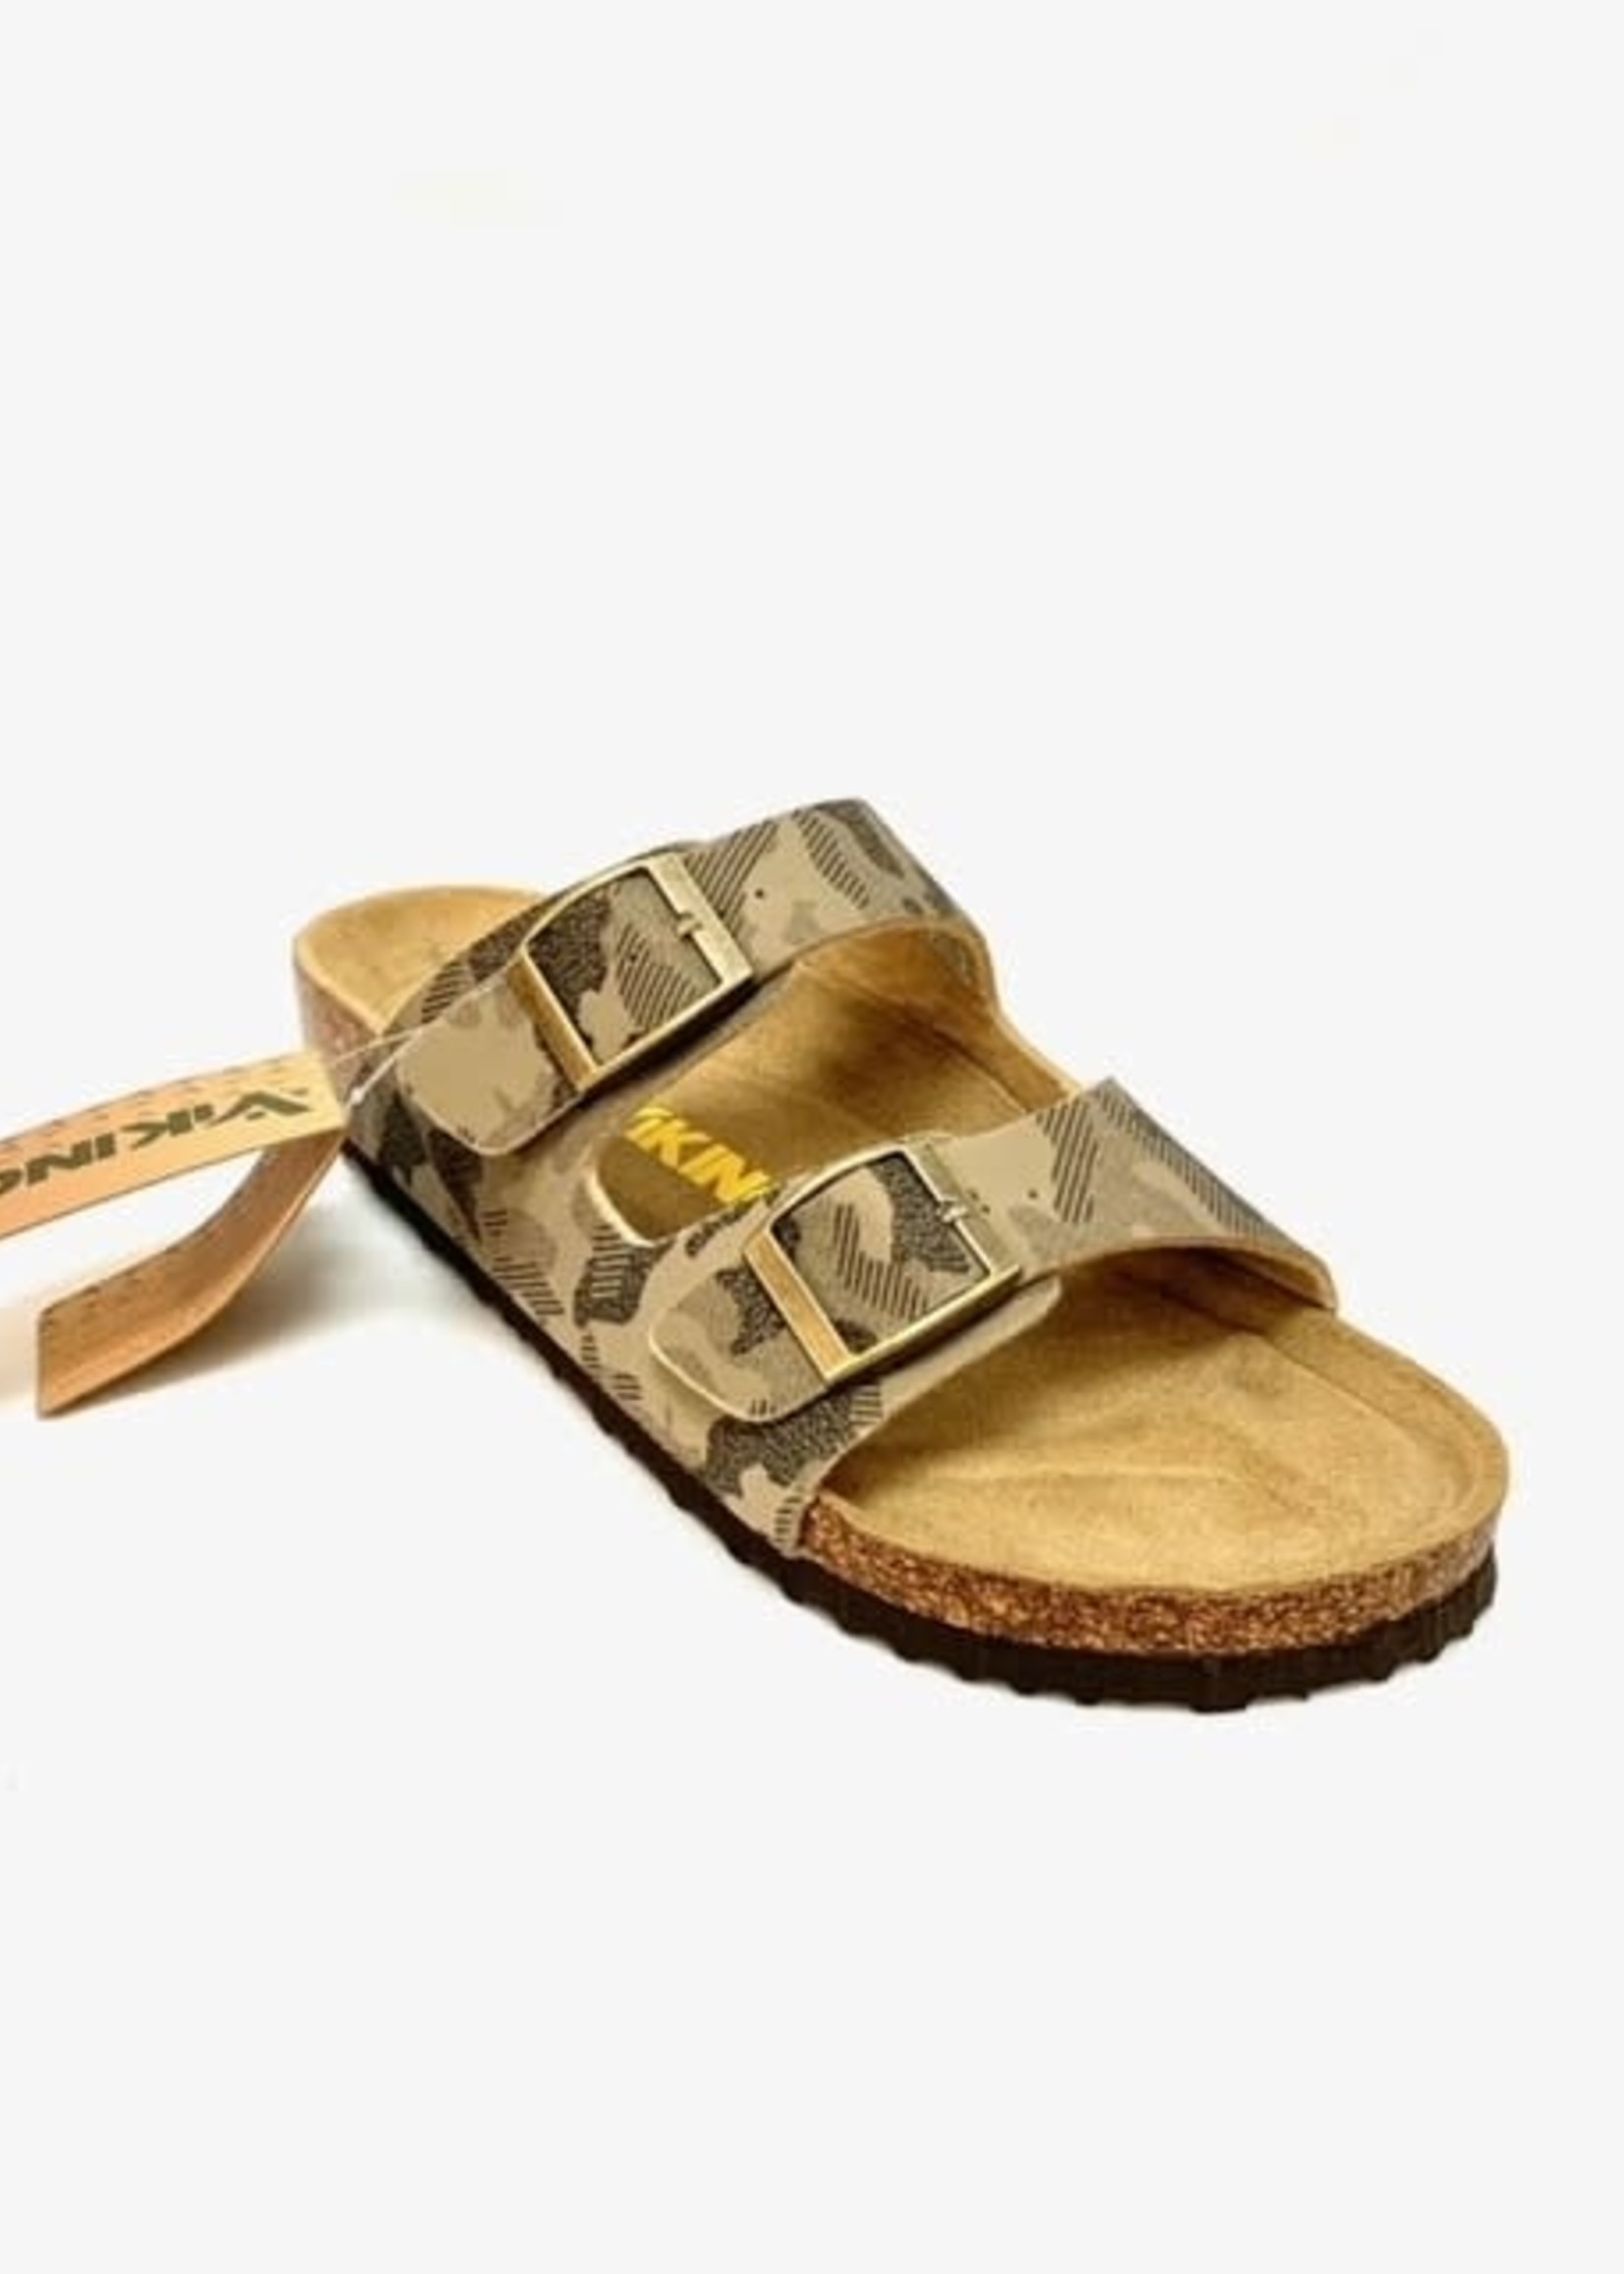 Viking Chatham Sandal, comes in several patterns